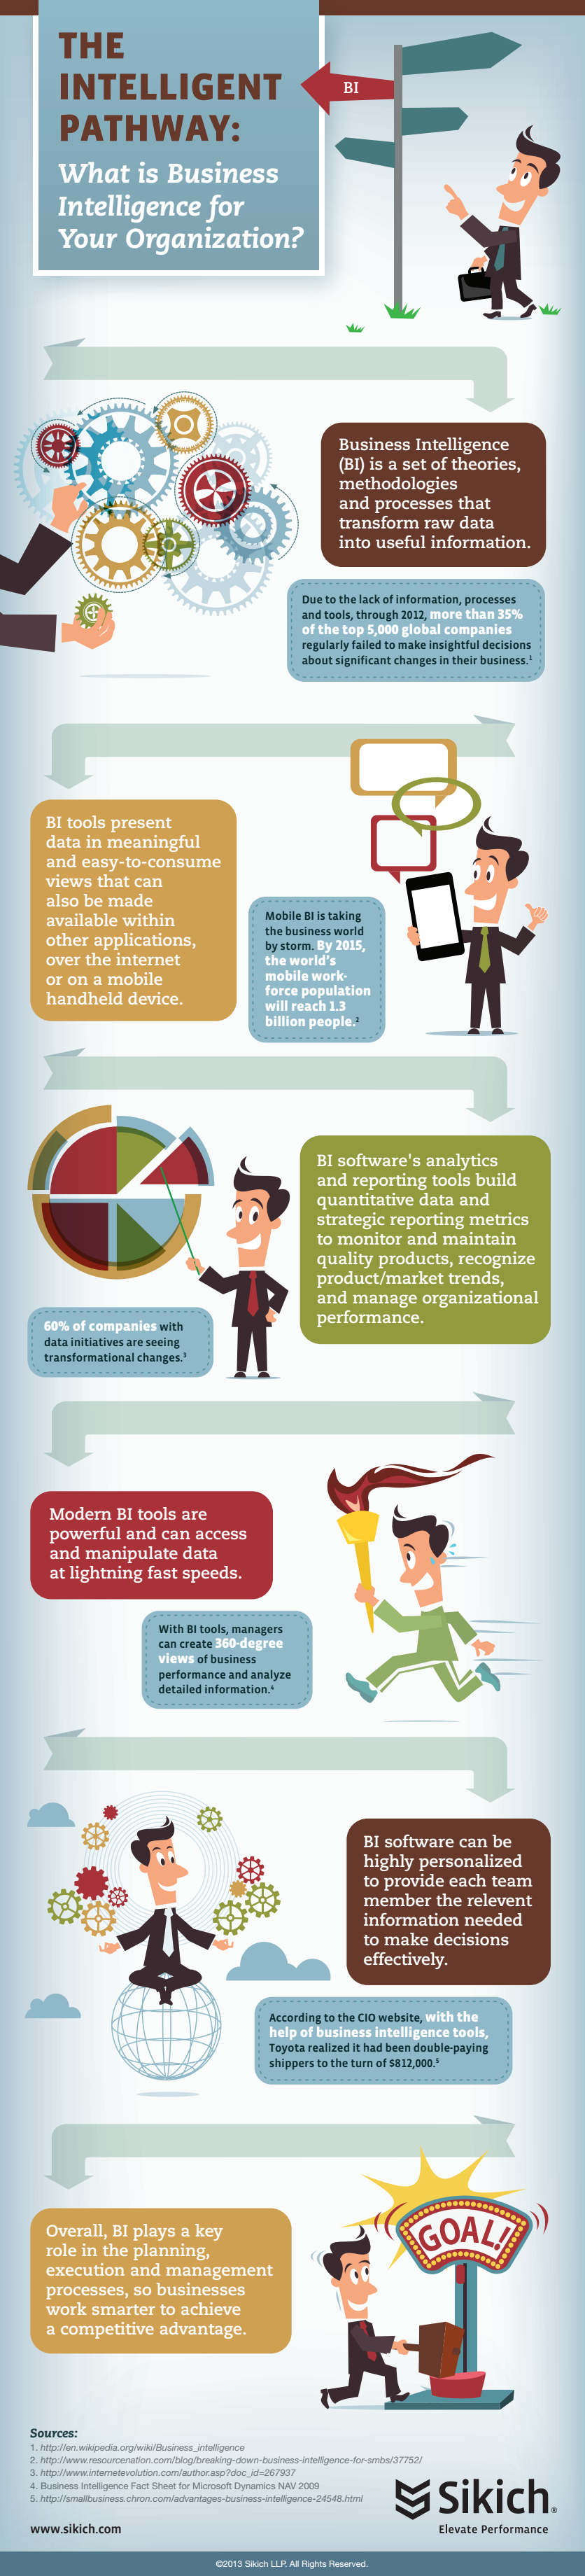 Infographic: What Is Business Intelligence For Your Organization?